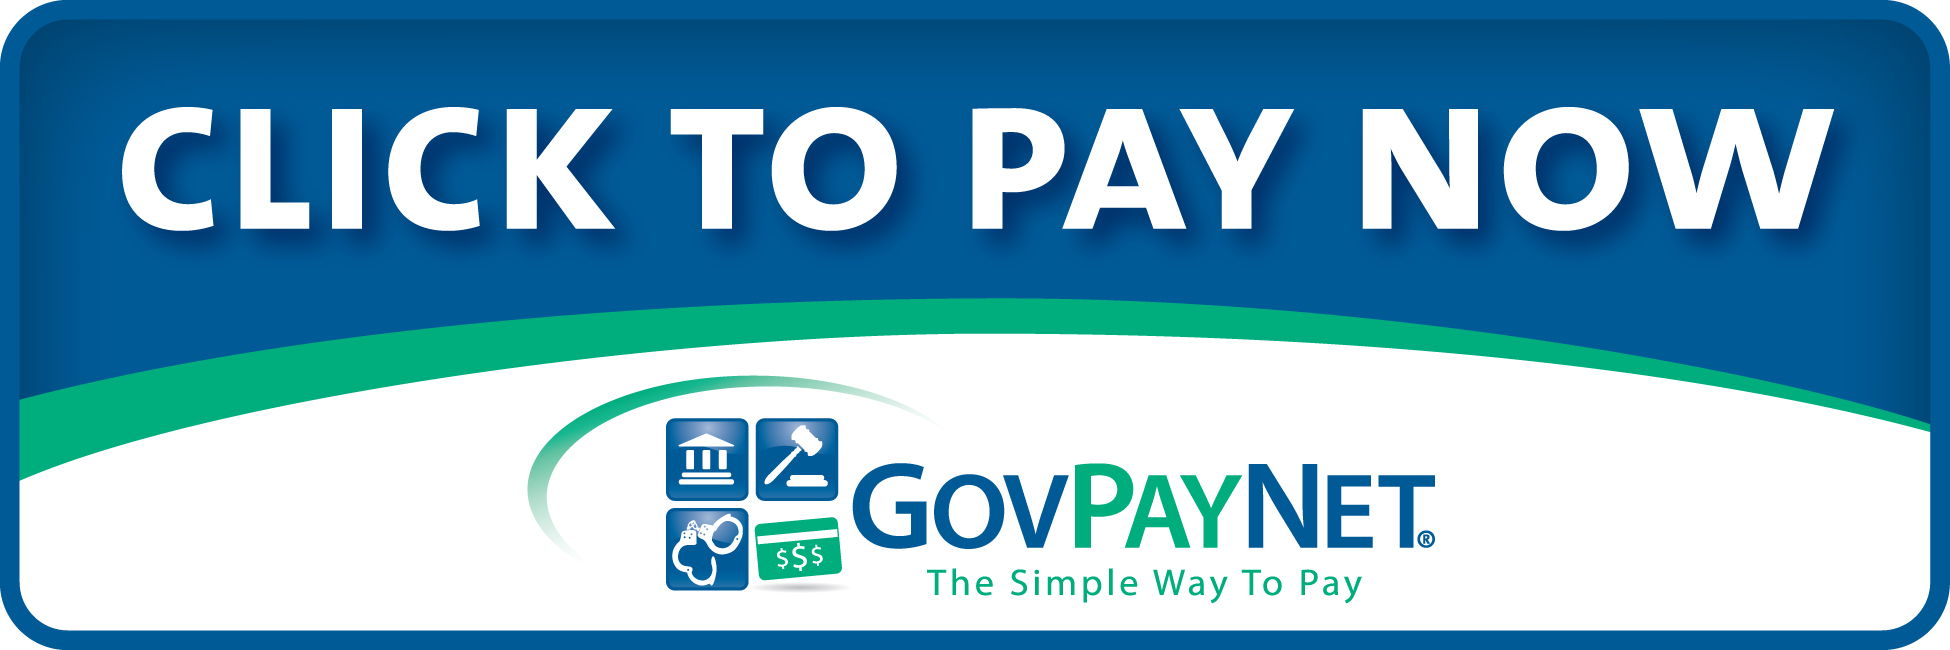 Pay Now-Logo-336x280 - Greene Government